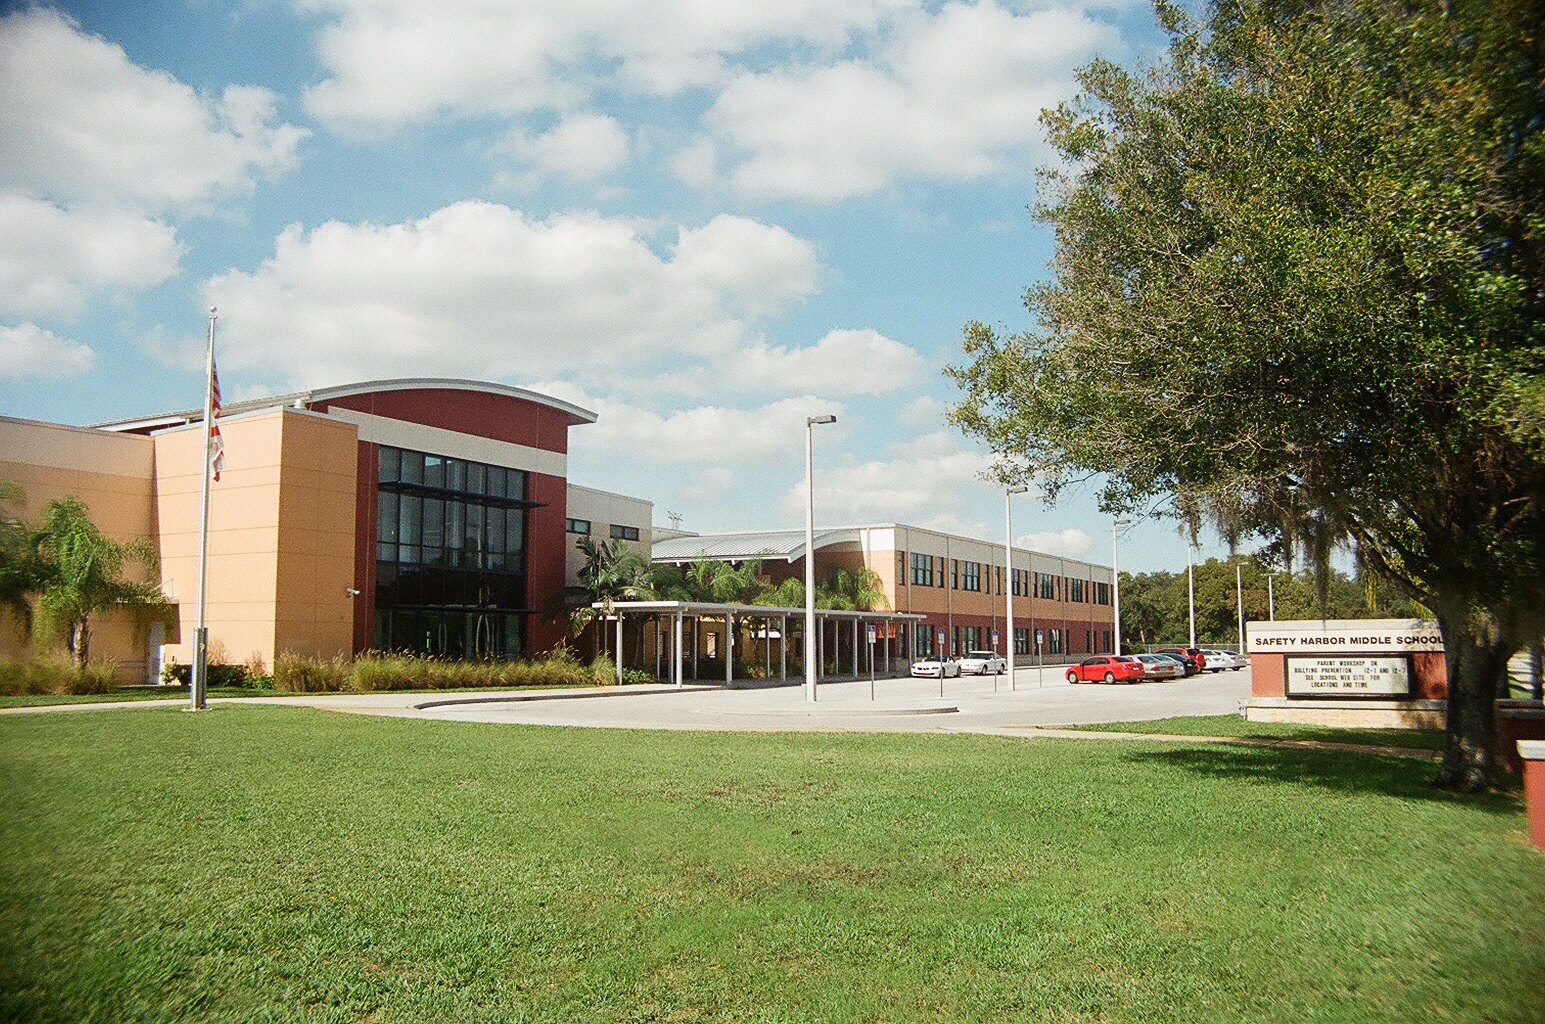 Safety_harbor_middle_school